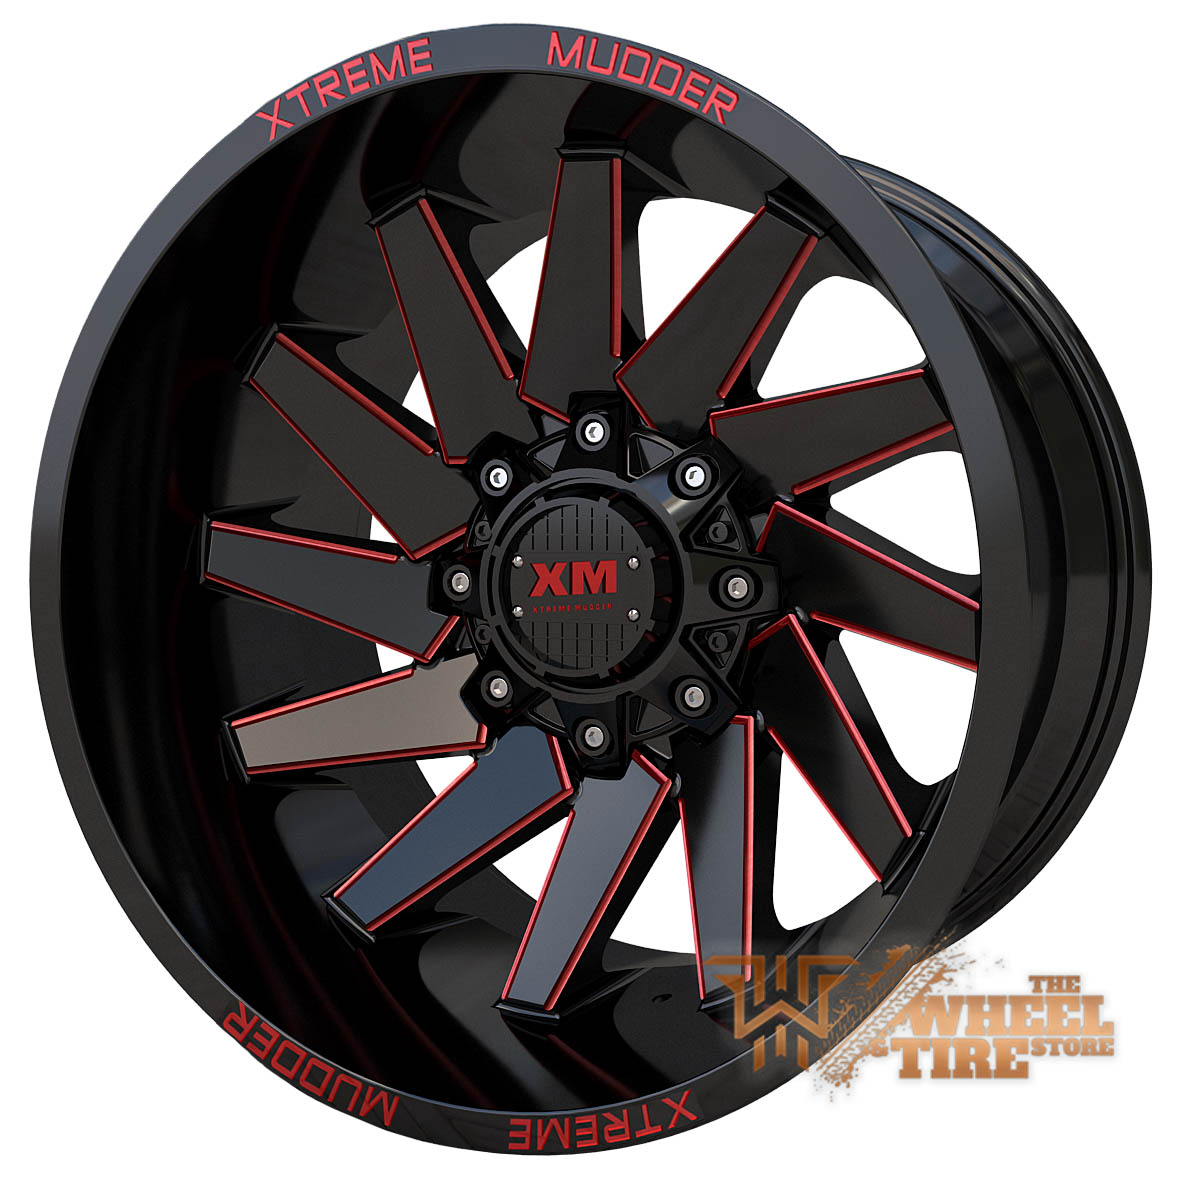 XTREME MUDDER XM-344 Wheel in Gloss Black Red Milled (Set of 4)